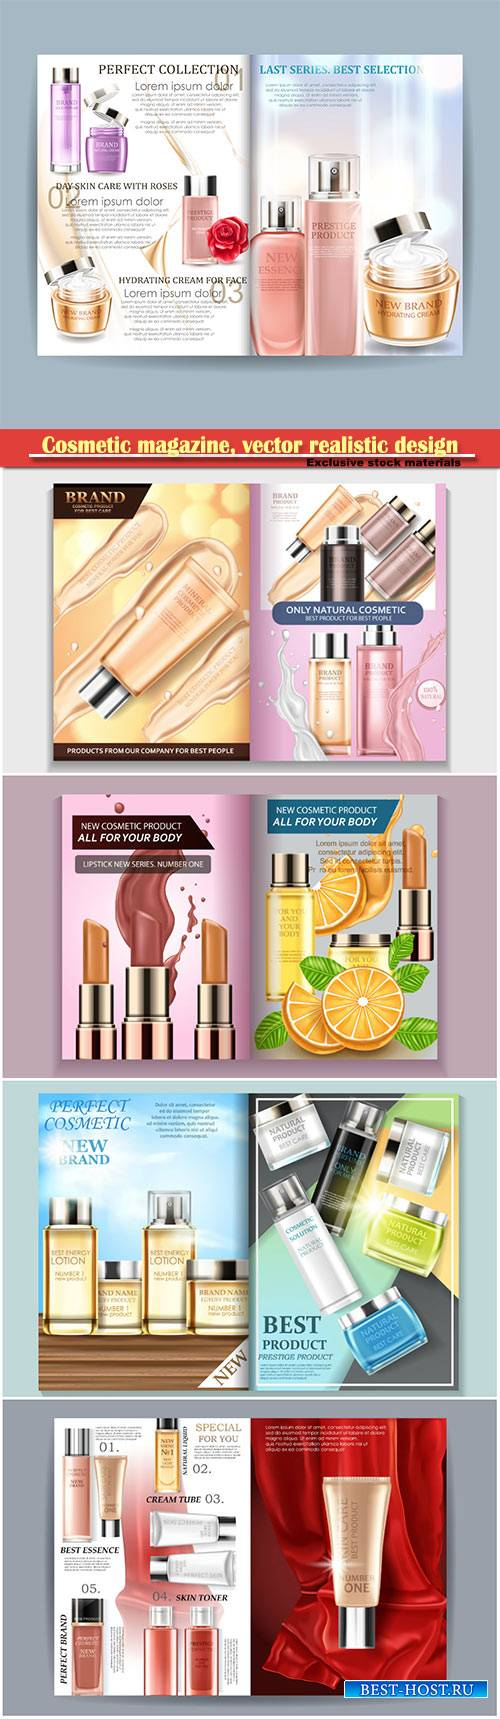 Cosmetic magazine, vector realistic design for your projects